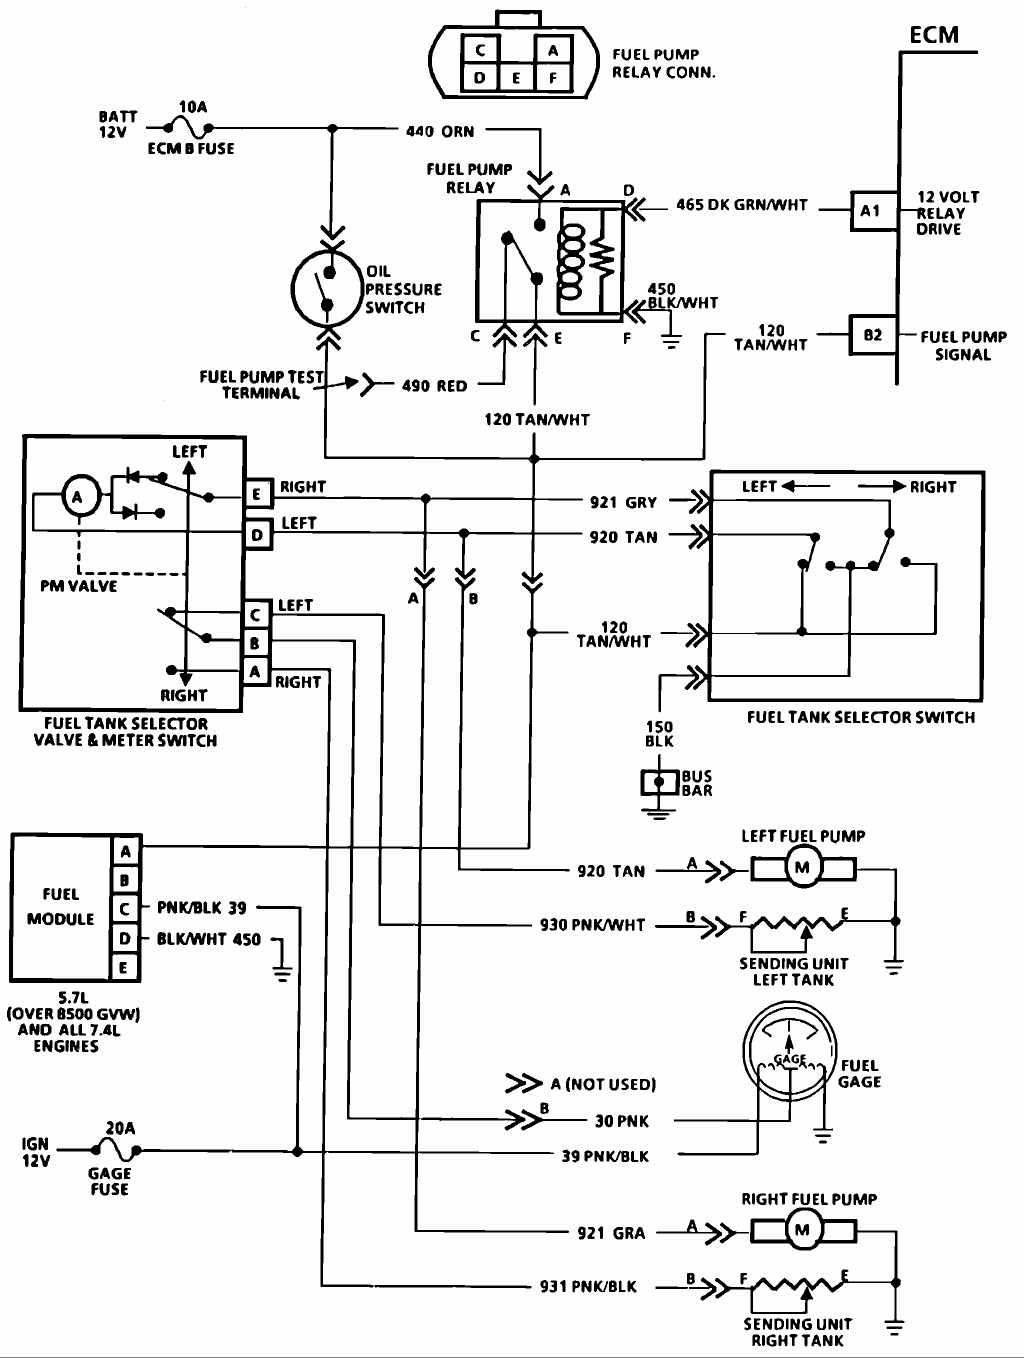 Diagram Electric Fuel Pump Wiring Diagram Gallery